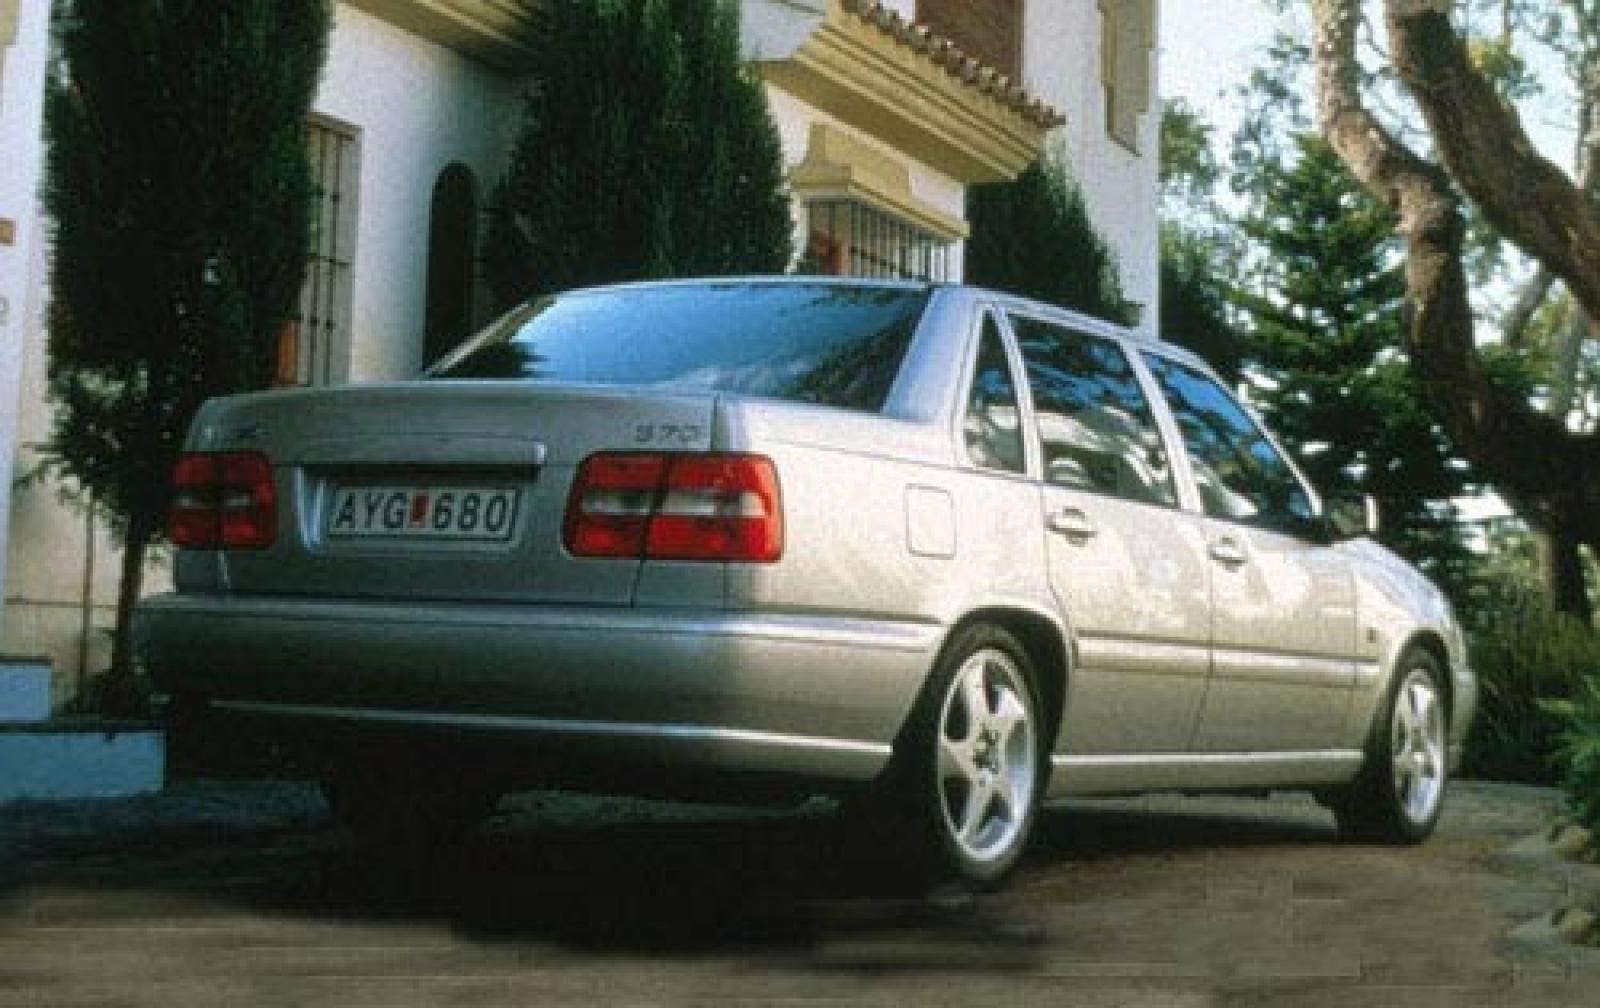 1999 Volvo S70 - Information and photos - Zomb Drive